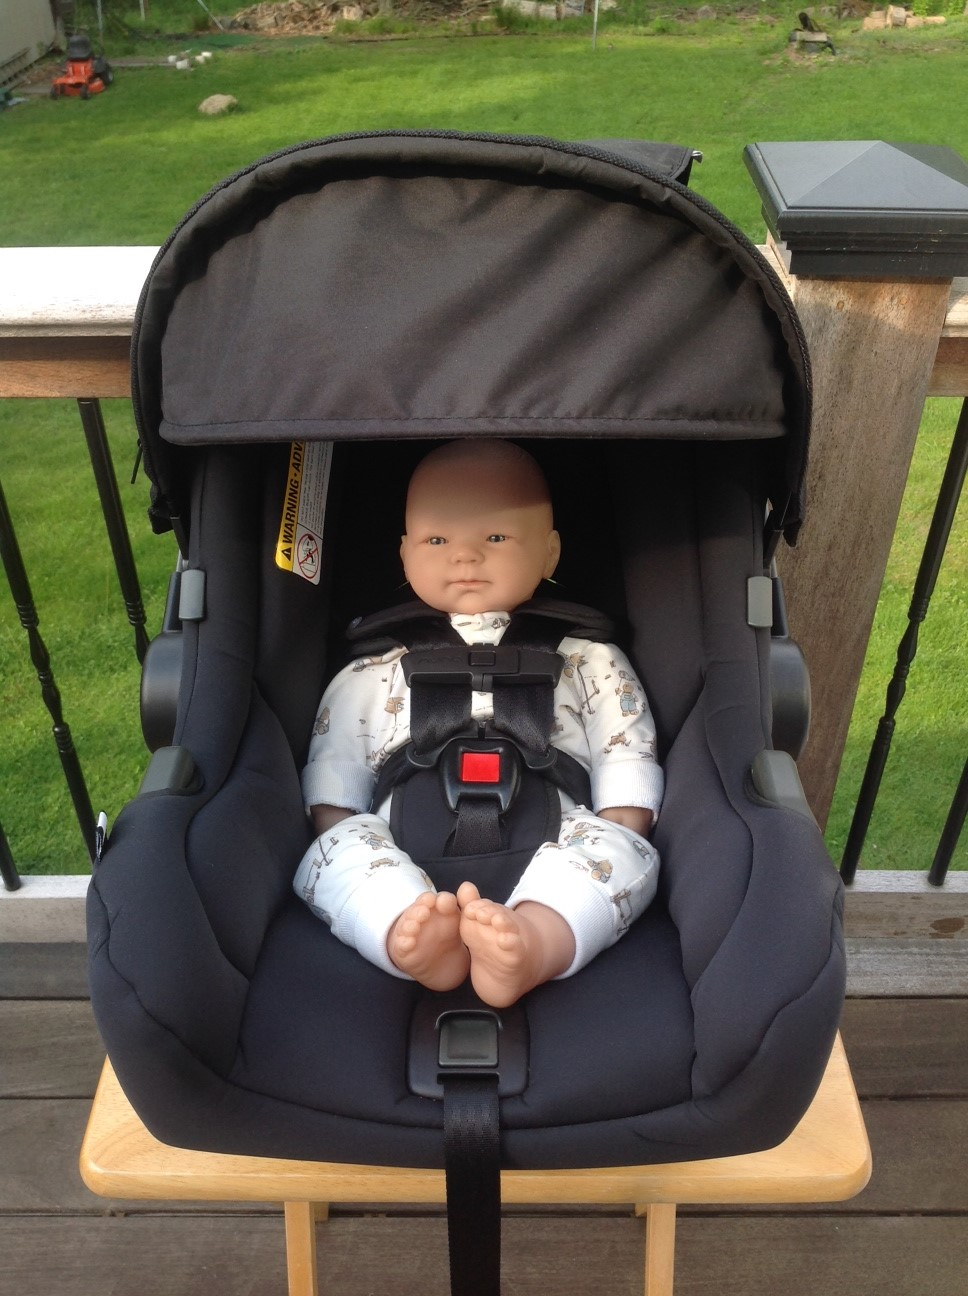 Infant Carrier That Is Not A Car Seat Carseatblog The Most Trusted Source For Car Seat Reviews